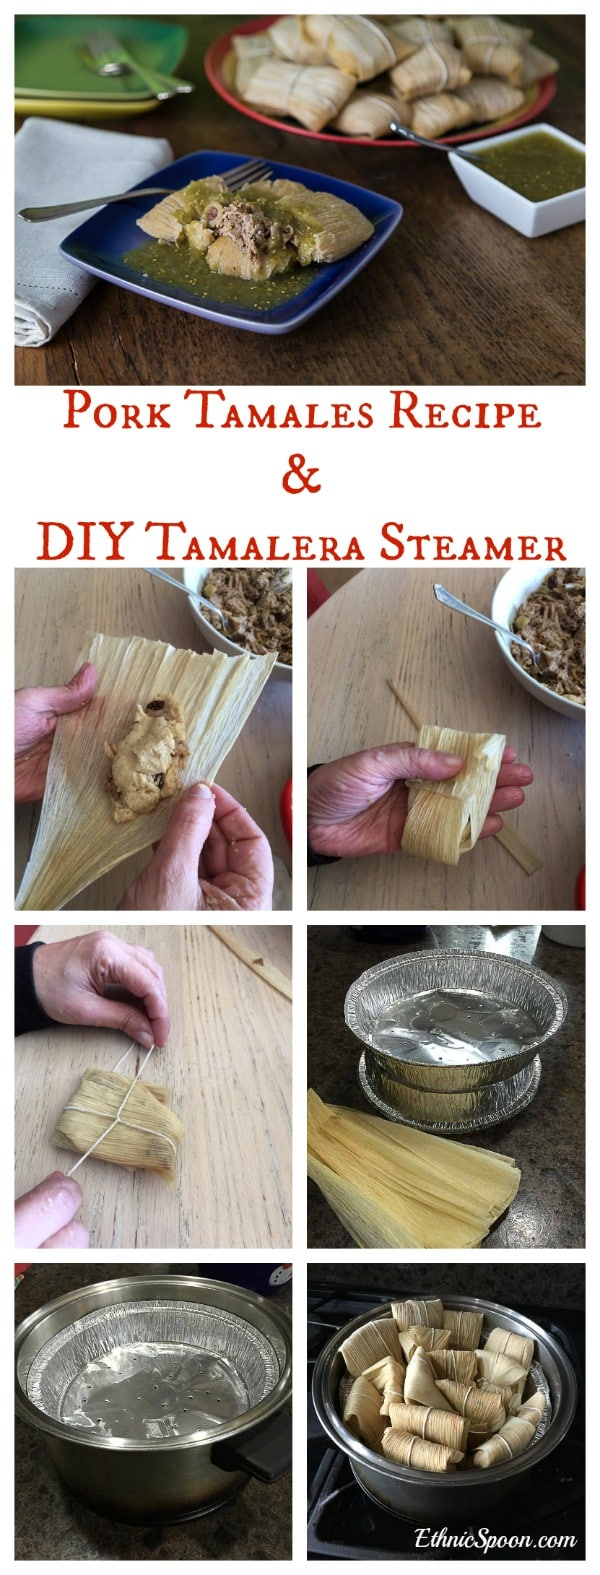 One of my Latin holiday favorite recipes: Pork tamales with salsa verde! Please I really cool kitchen hack to make your own tamale steamer with pie tins! |ethnicspoon.com